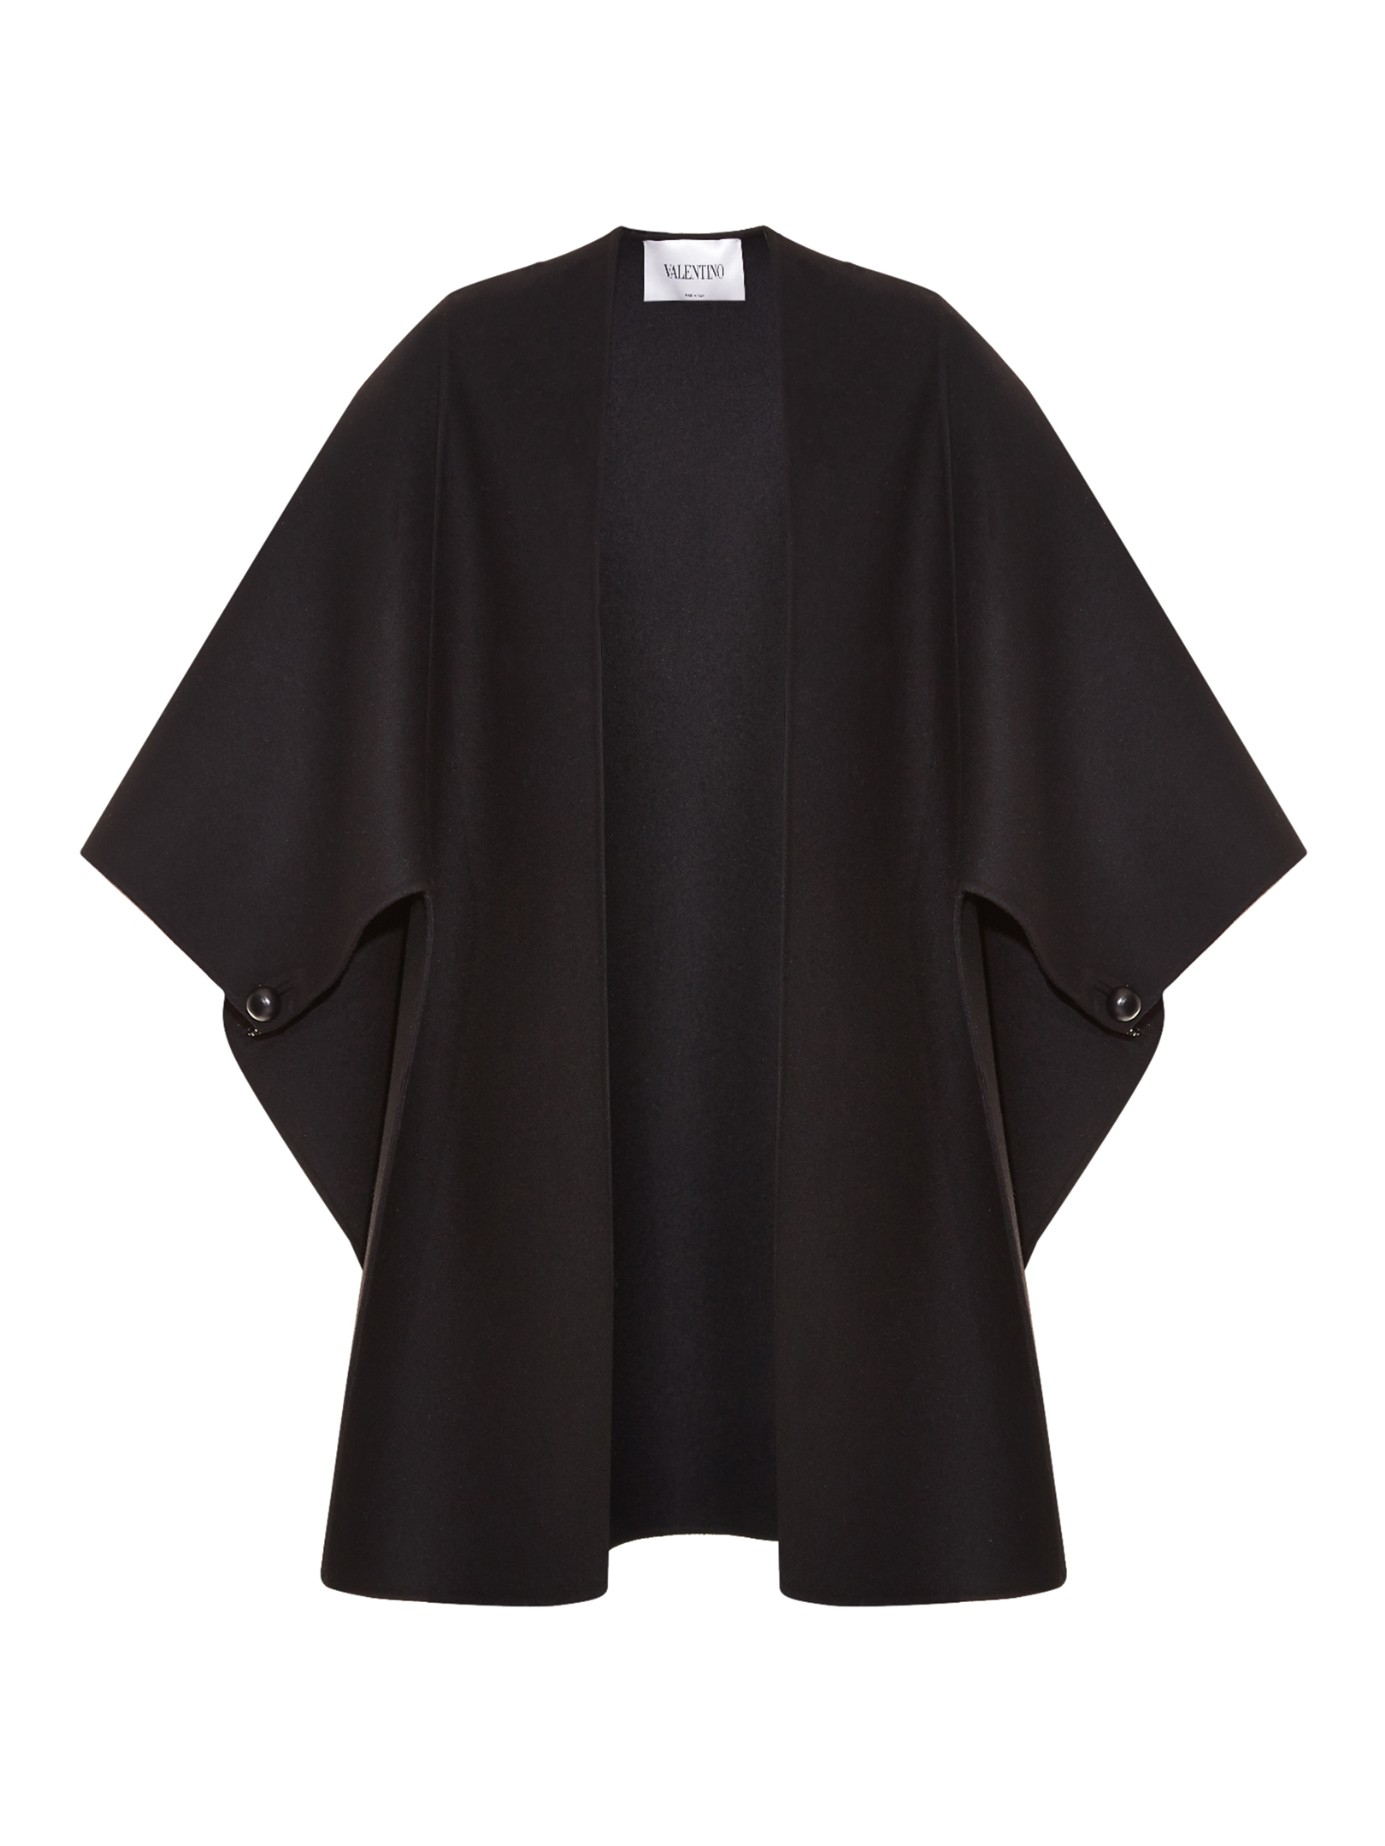 Lyst - Valentino Open-front Cape in Black a92afdbcac09